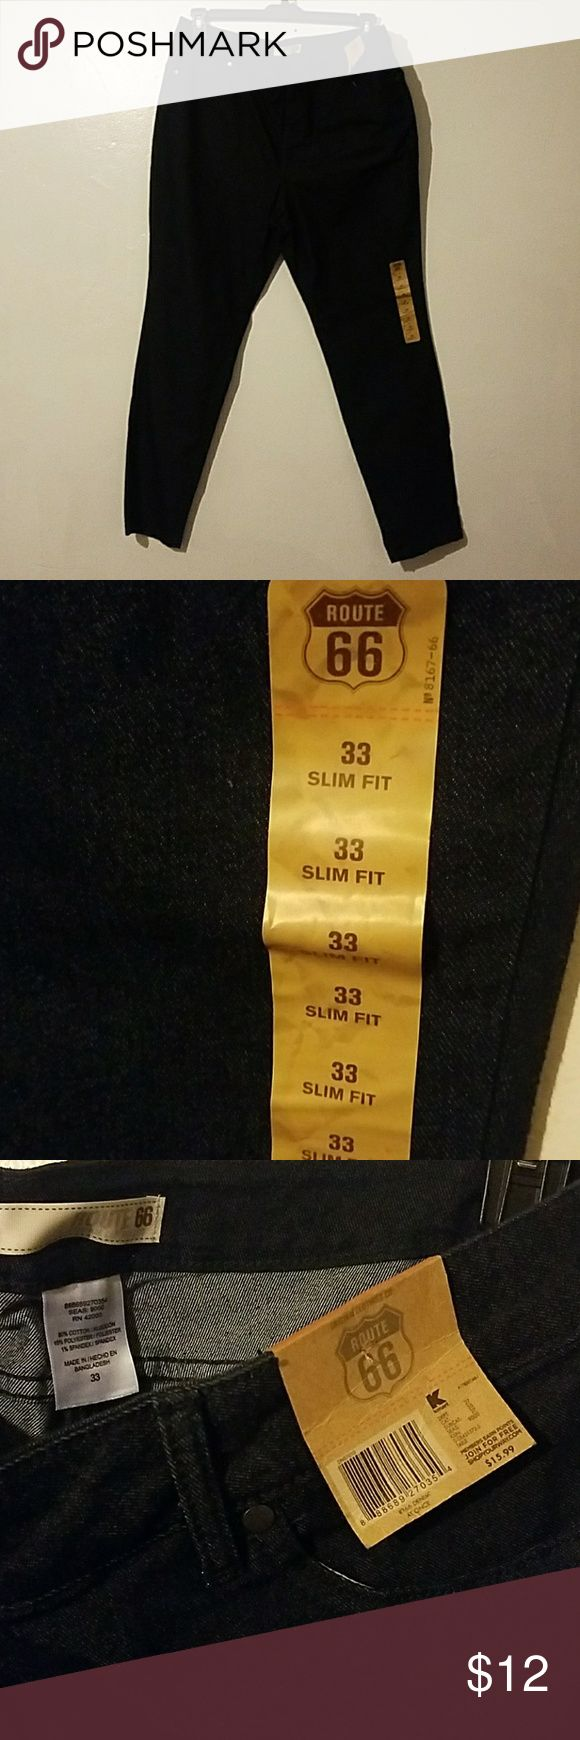 Women's Size 33 Route66 Jeans Slim Fit Size 33 (which is converted to a 15/16 or a 14). Slim fit. Brand New, never worn, very deep indigo blue. It almost looks black. Jeans Skinny